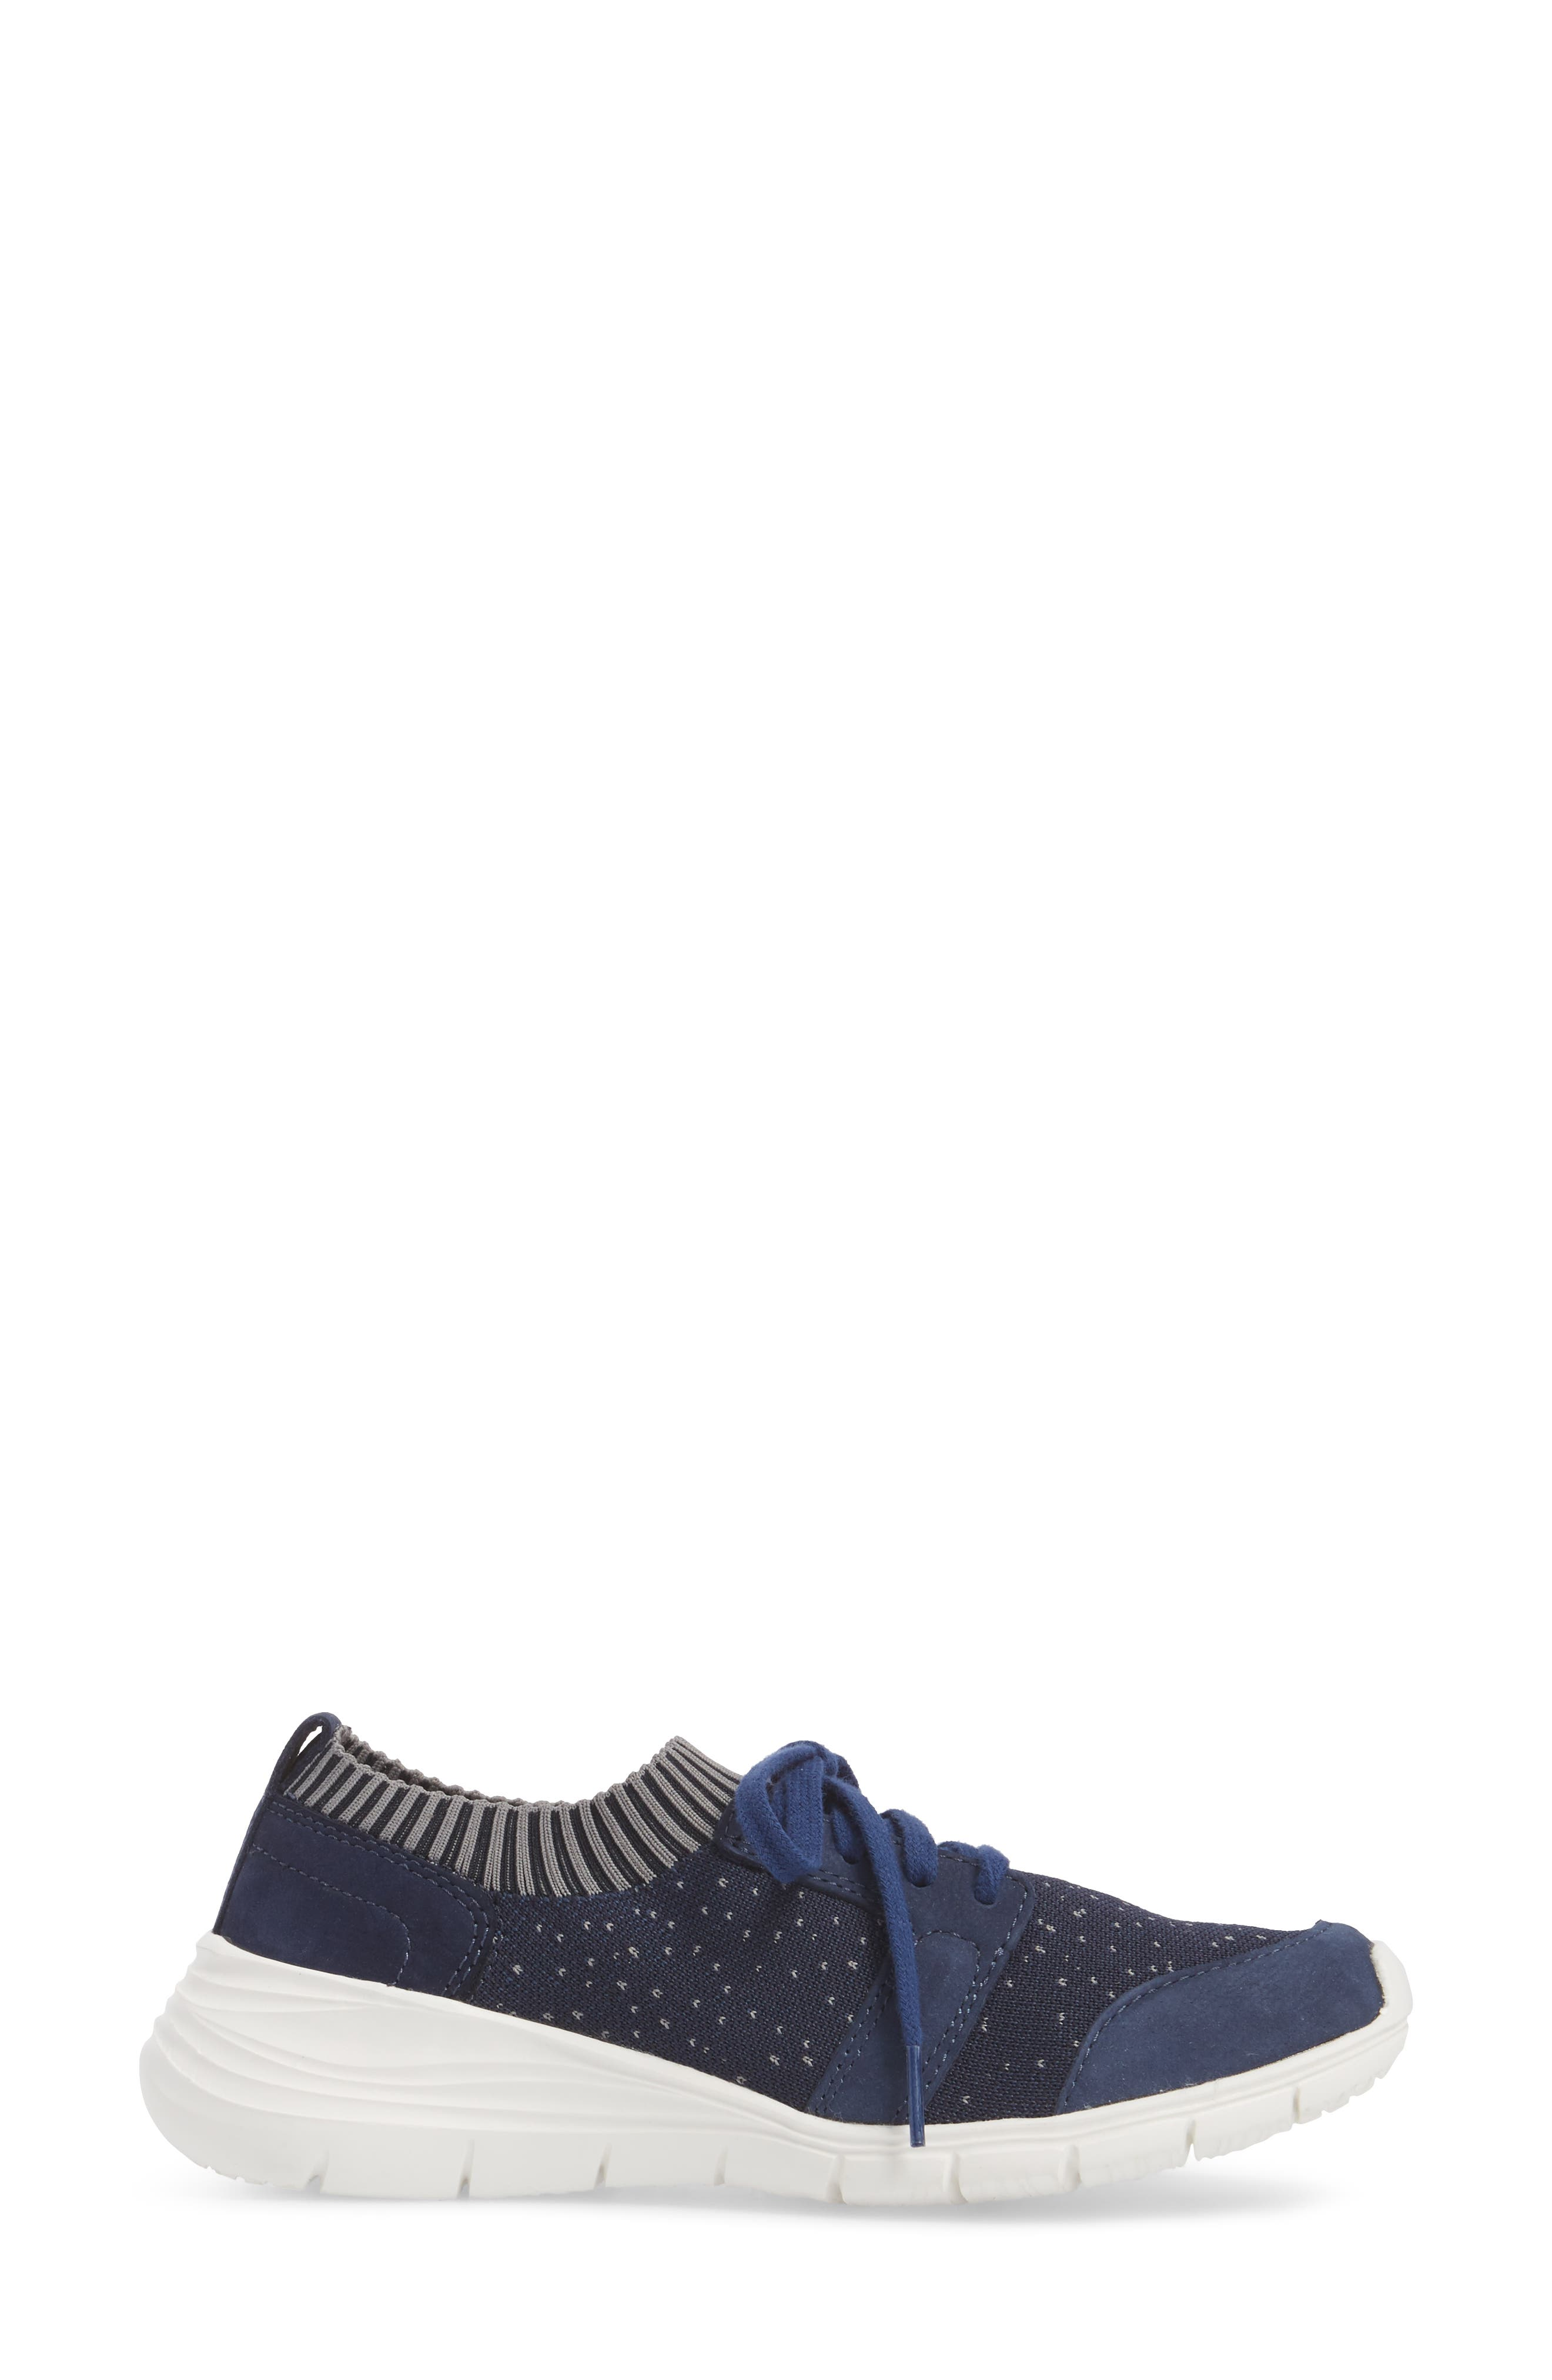 Cypress Knit Sneaker,                             Alternate thumbnail 3, color,                             Royal Navy Fabric